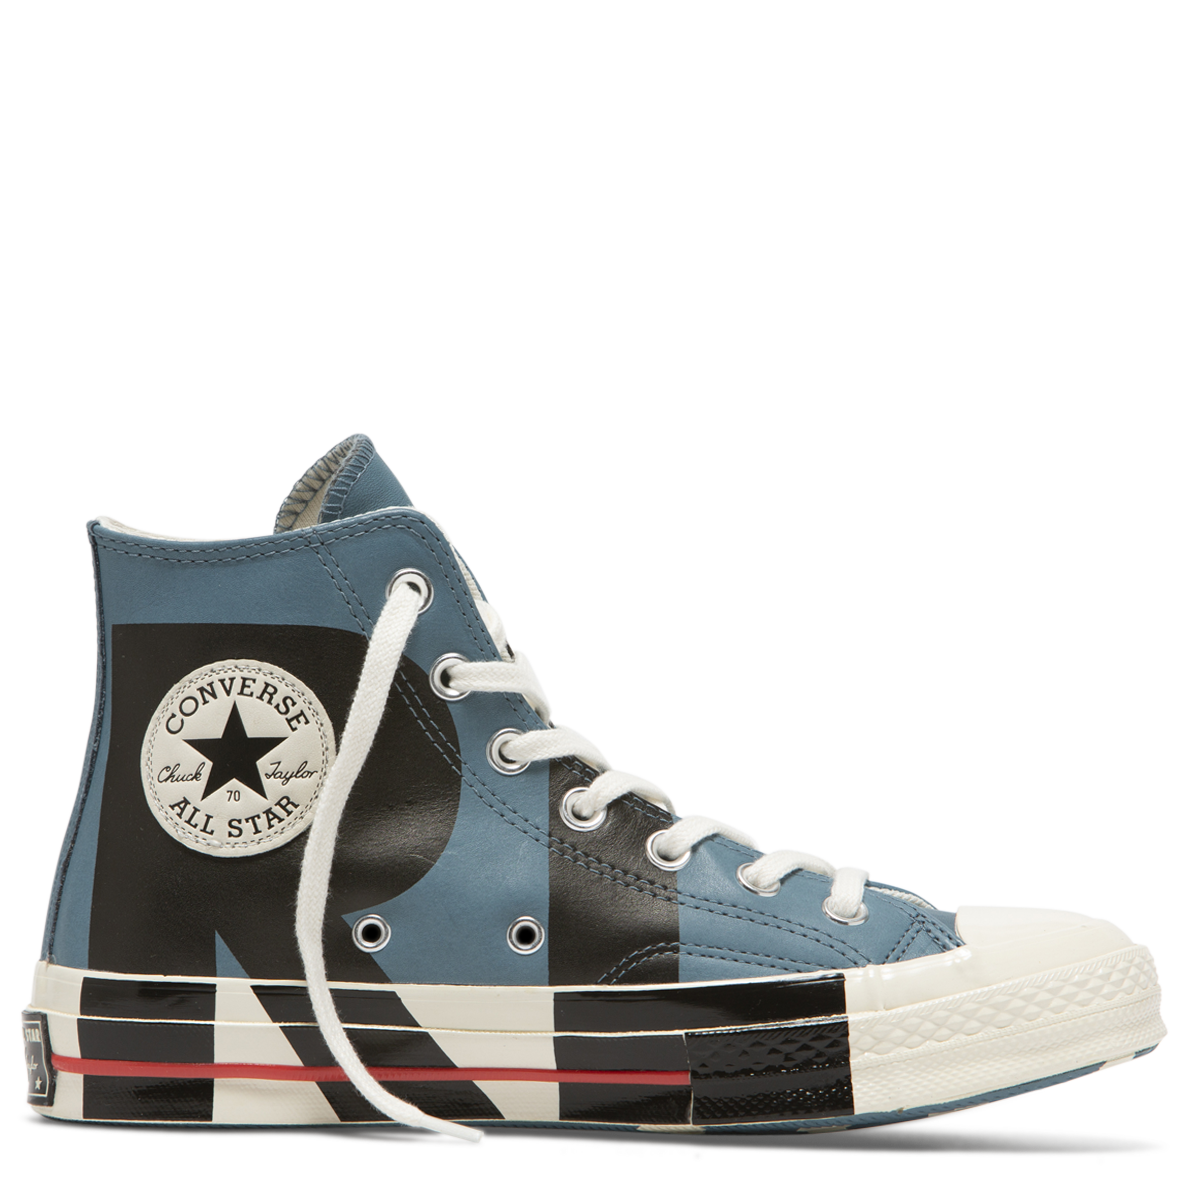 27cc8eb7218 Chuck Taylor All Star 70 Love Graphic High Top Celestial Teal ...